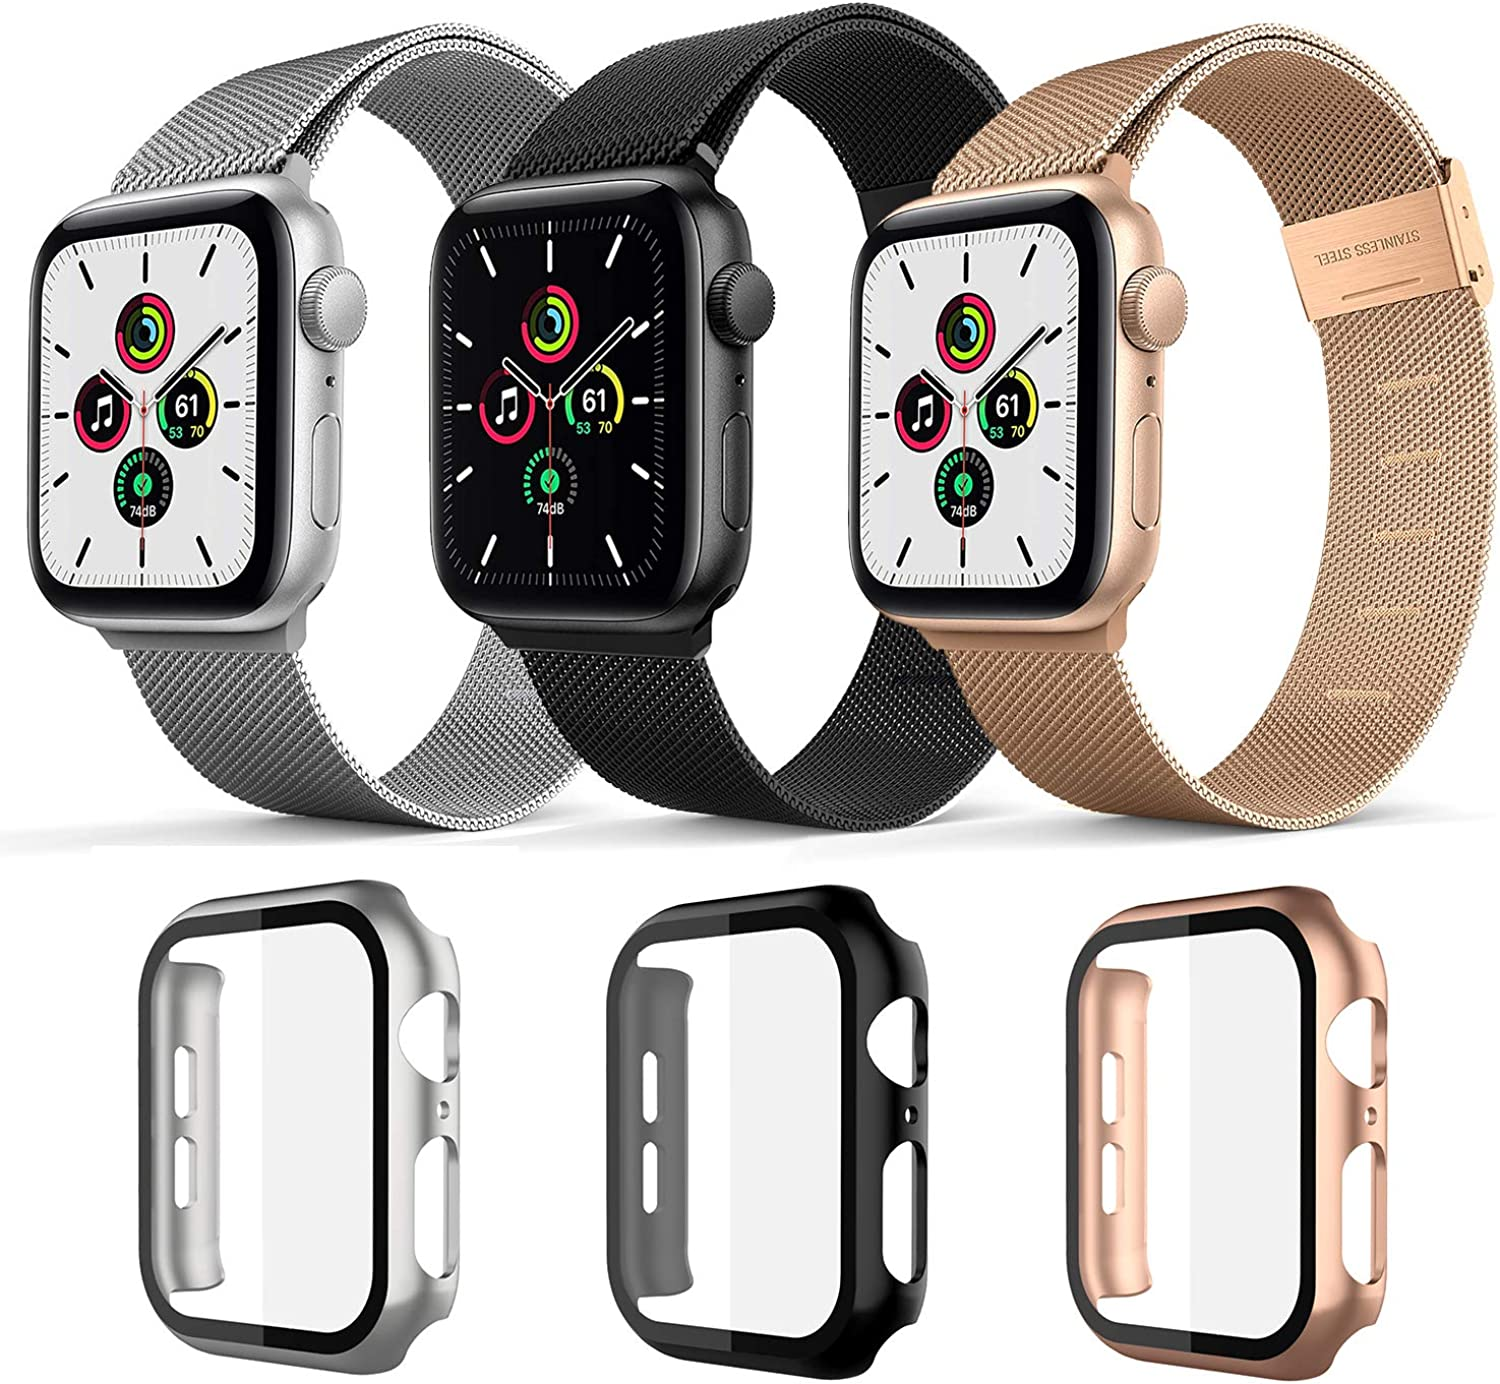 Magnetic Band with Case Compatible for Apple Watch Bands 38mm 40mm 42mm 44mm ,Case Built in Tempered Glass Screen Protector Stainless Steel Mesh Replacement Bands For Iwatch Series 6 44mm 40mm